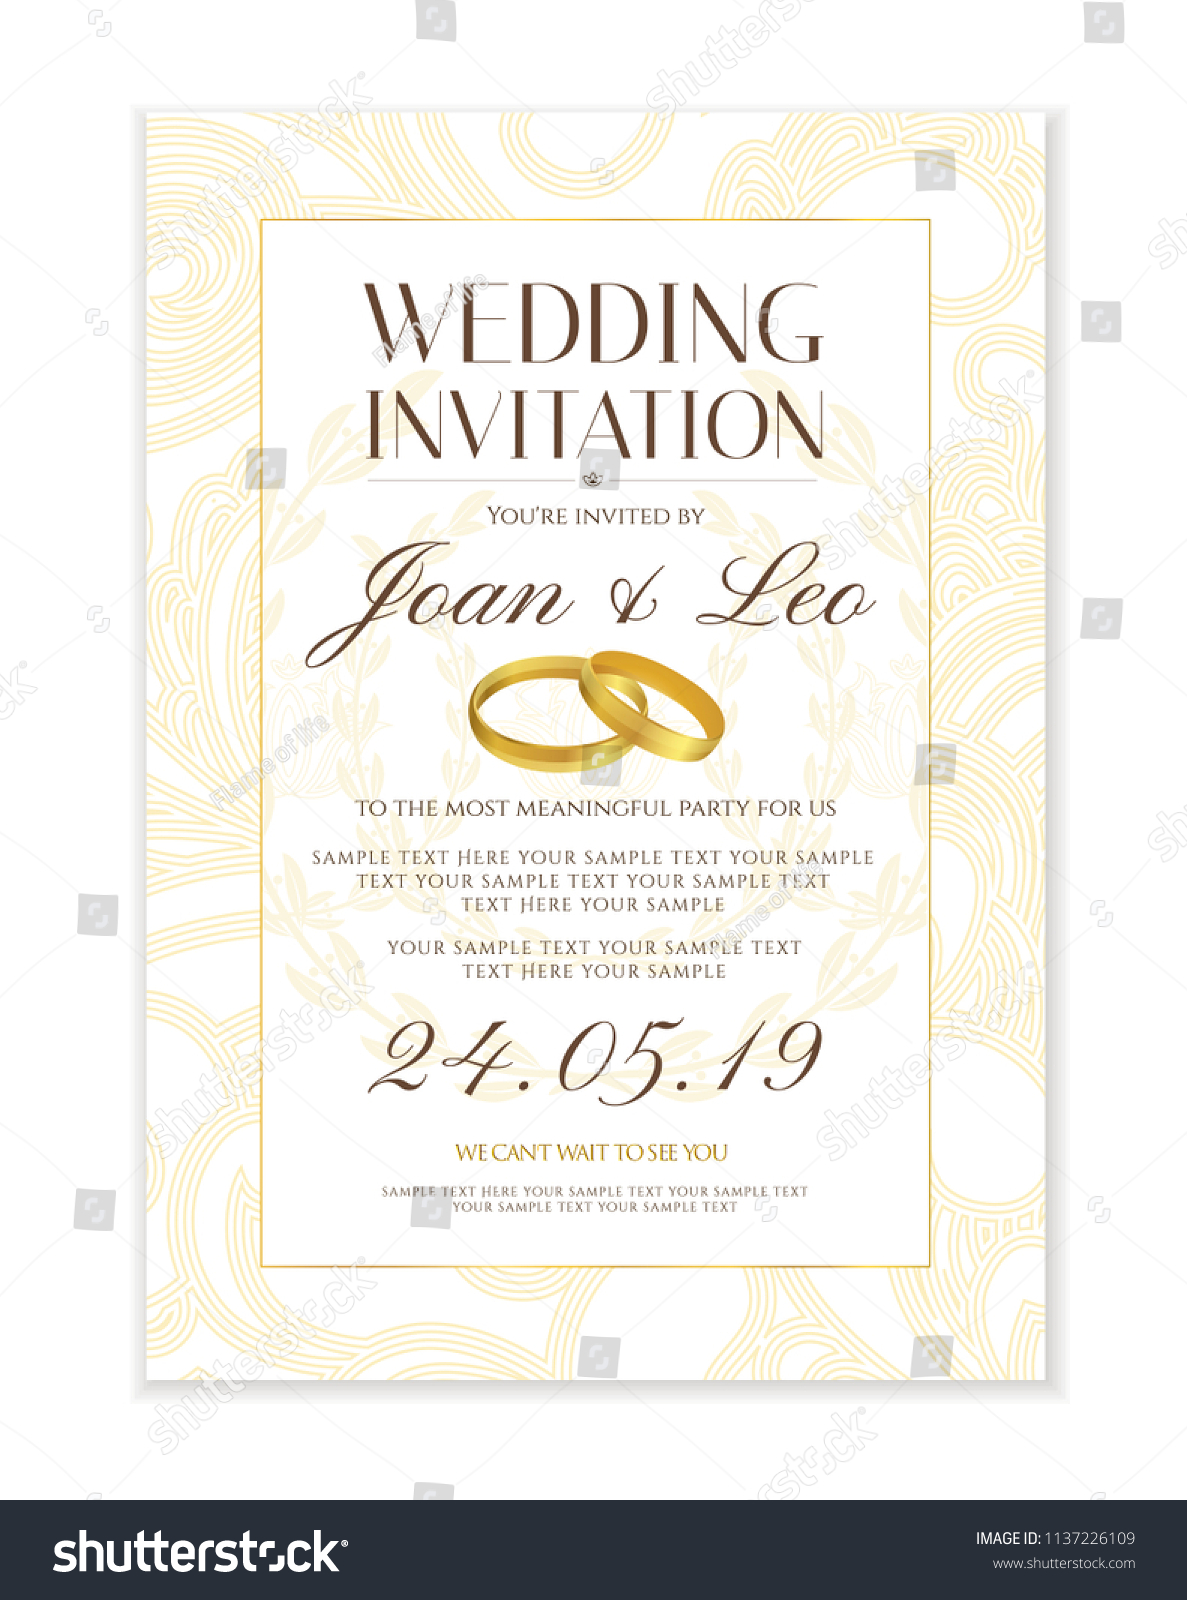 wedding invitation design template save the date card classic golden background with gold